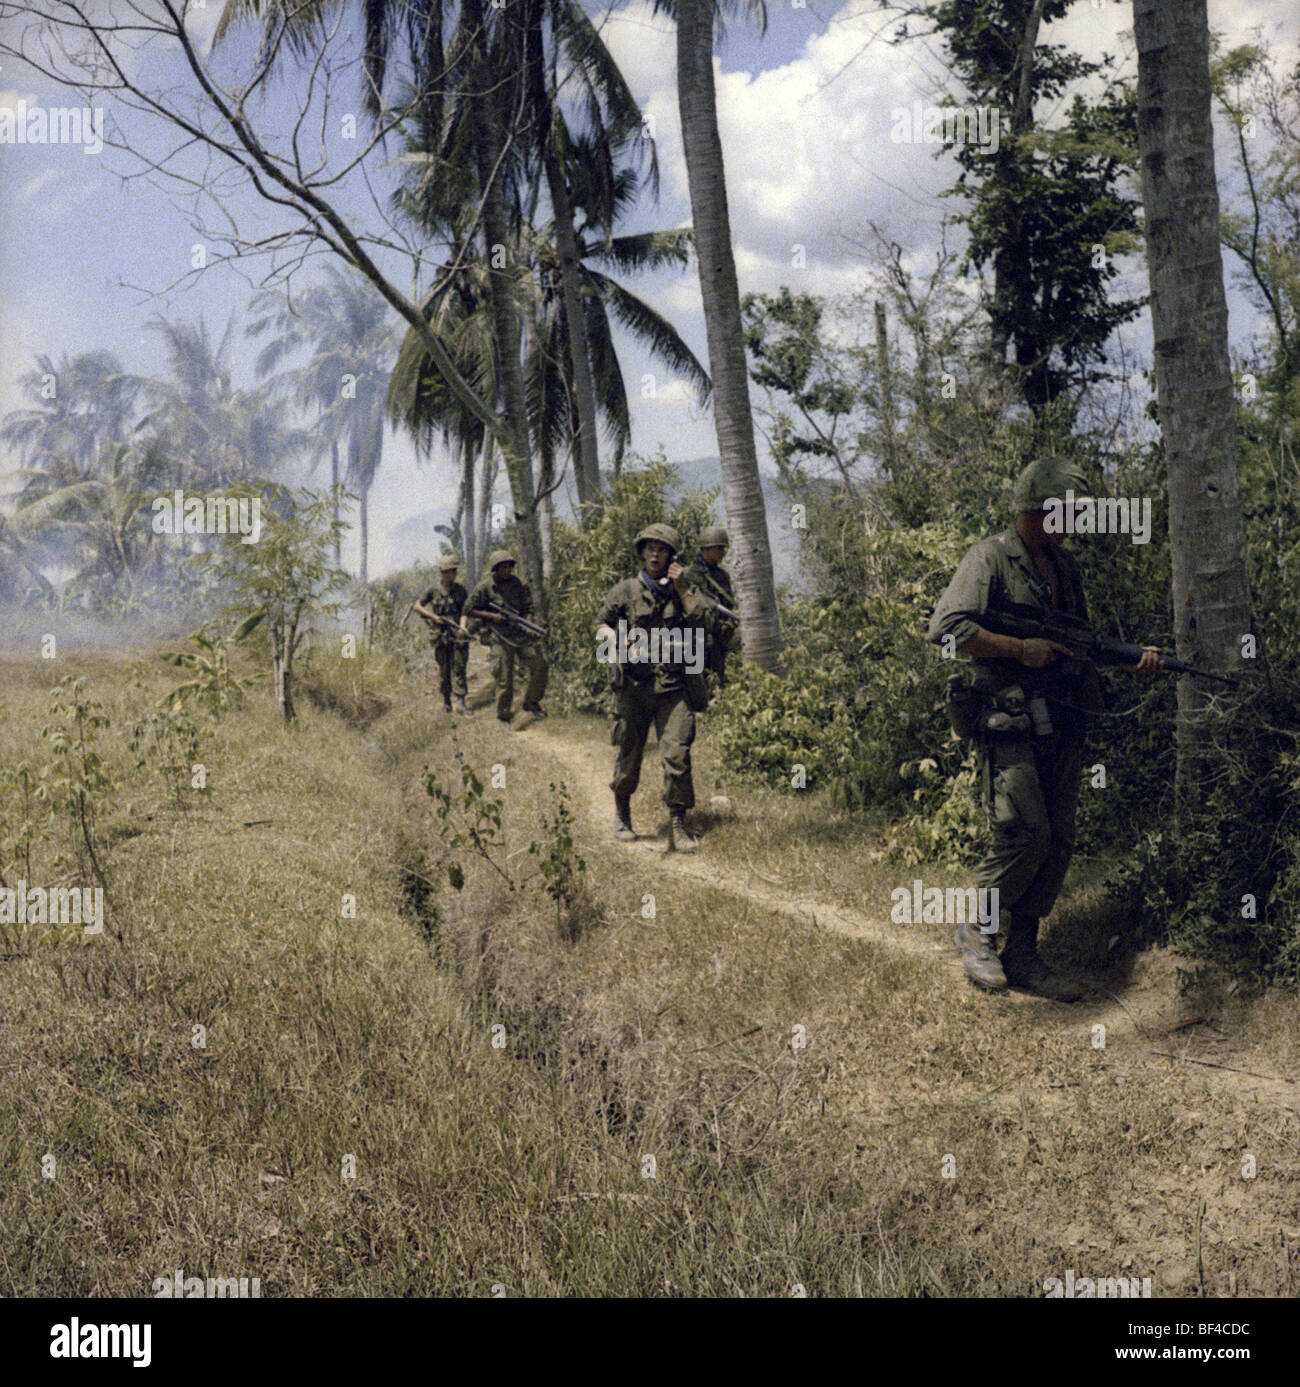 Infantrymen of B Troop, 1st Squadron, 9th Cavalry walk on patrol during the Vietnam War in 1967. - Stock Image